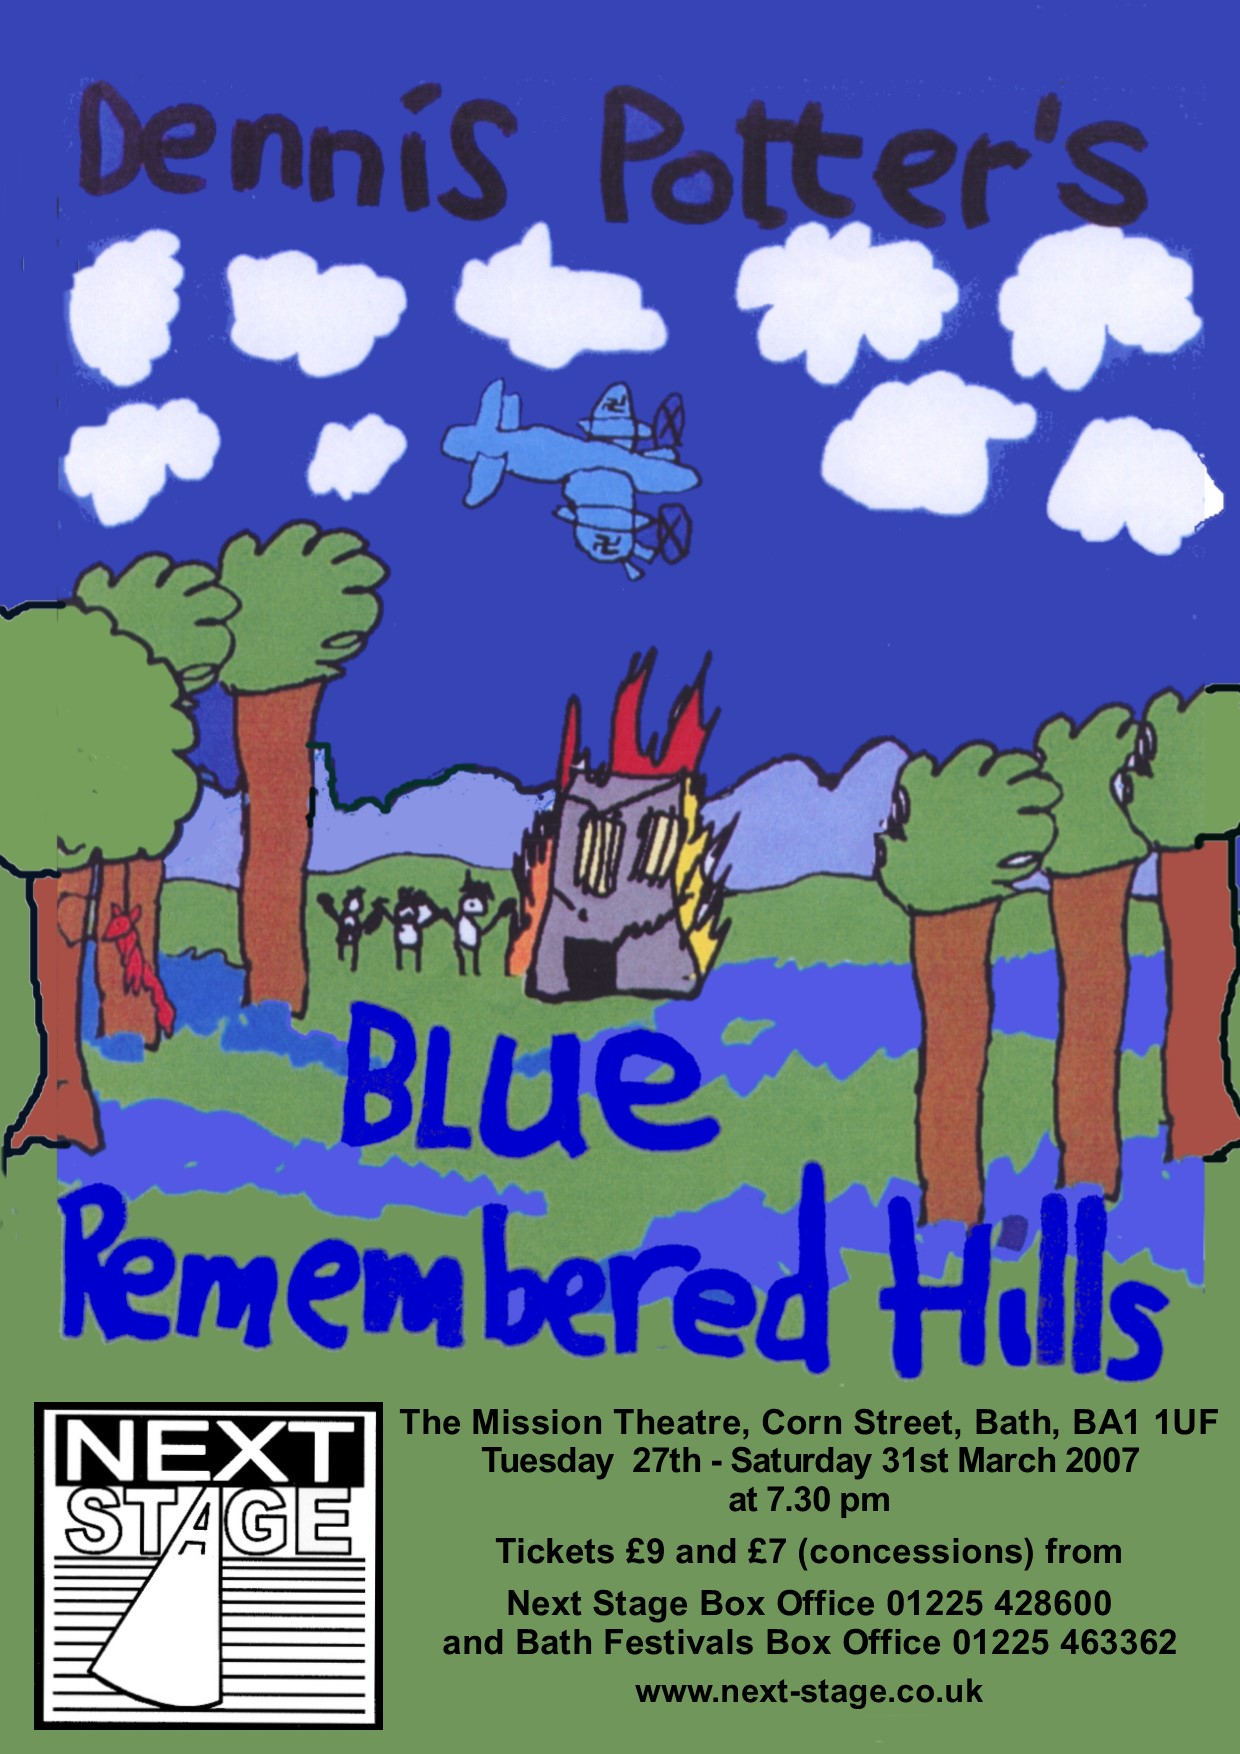 blue remembered hills A4 poster.jpg